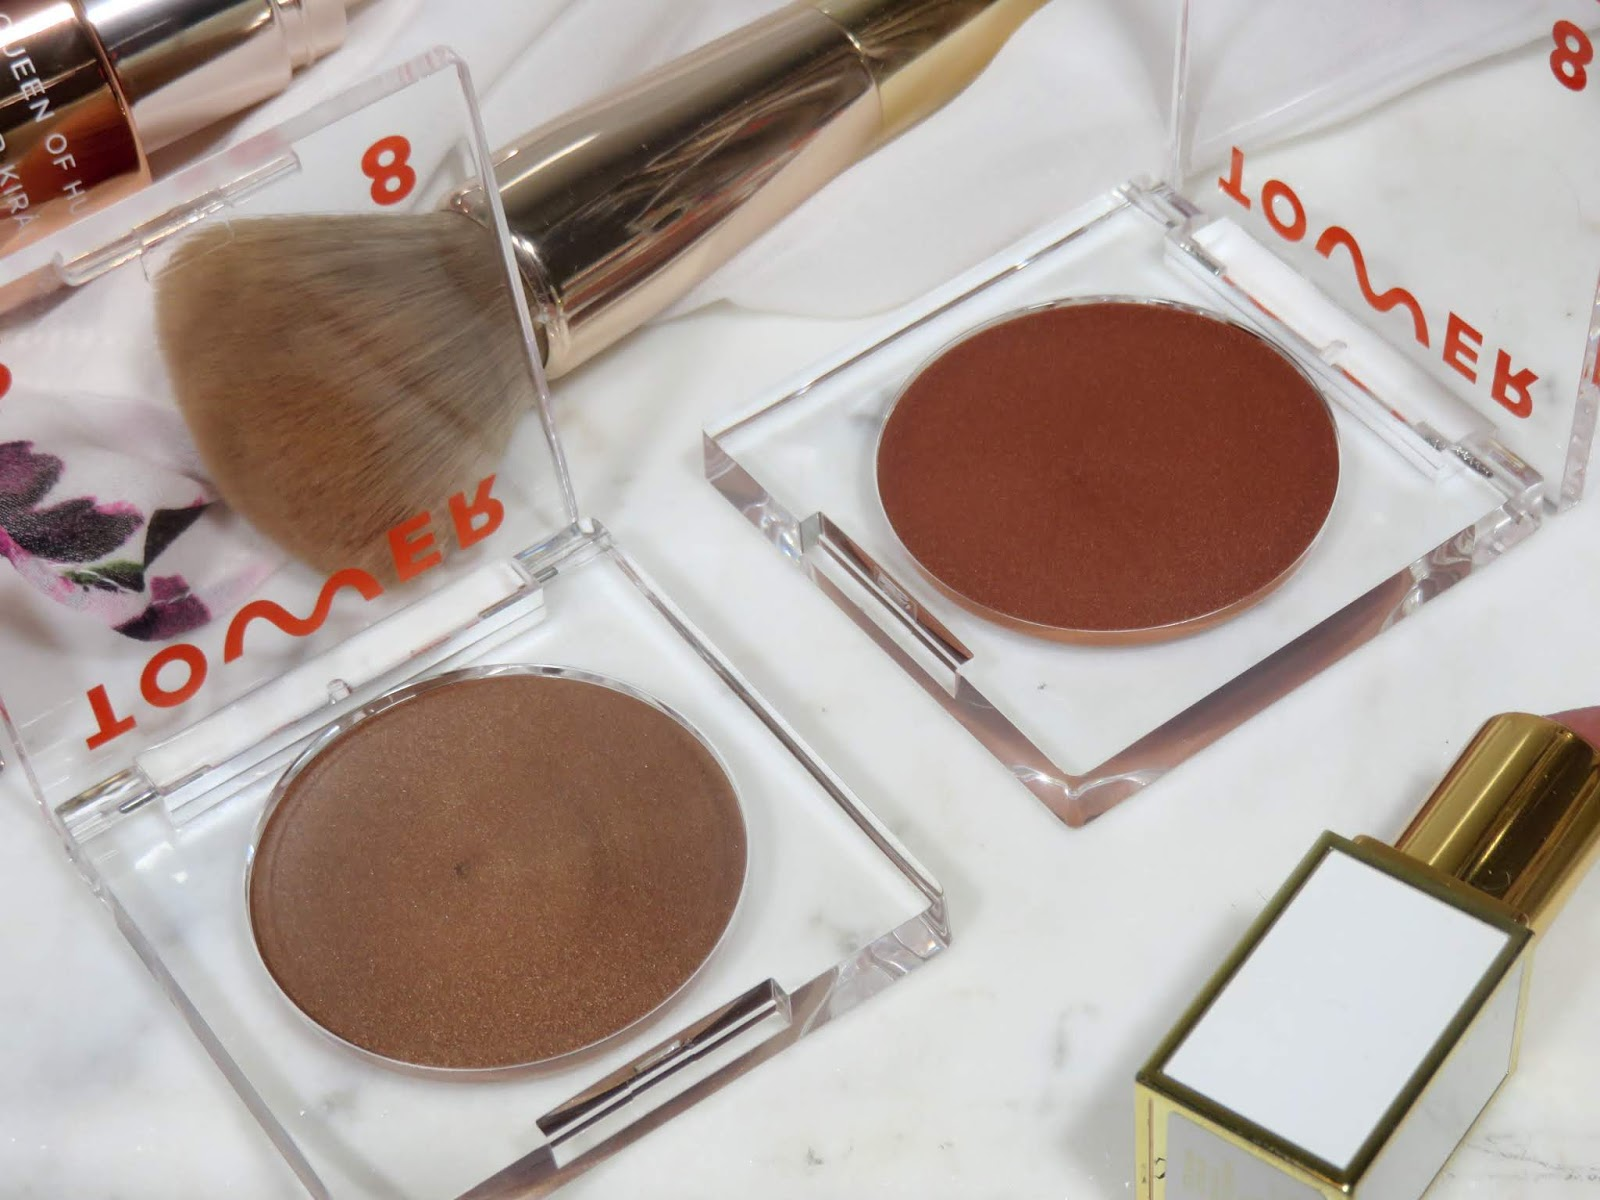 Tower 28 Beauty Bronzino Illuminating Bronzer Review and Swatches